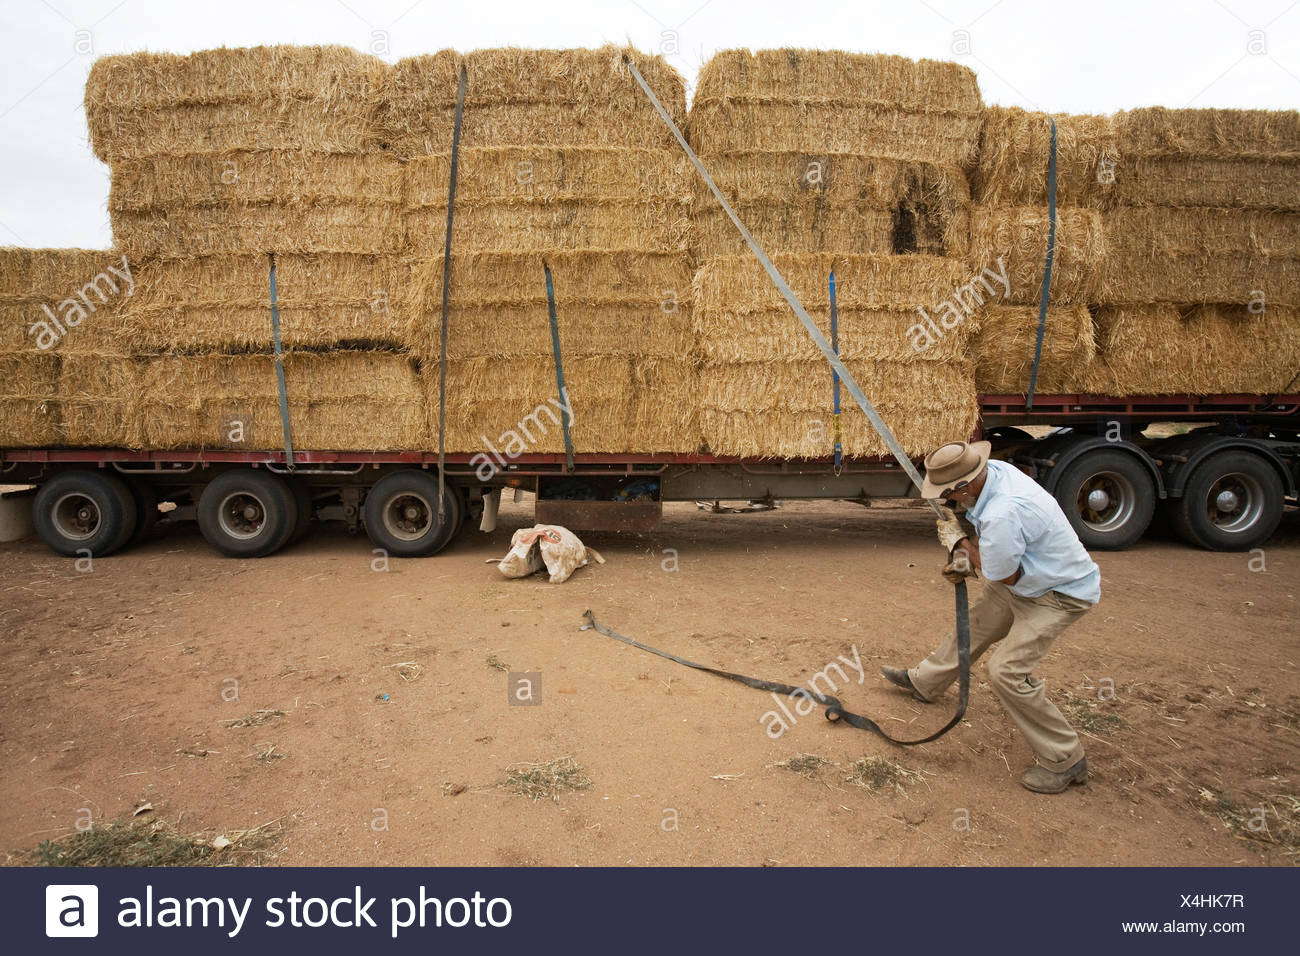 Hay bales are delivered to a dairy farm. - Stock Image